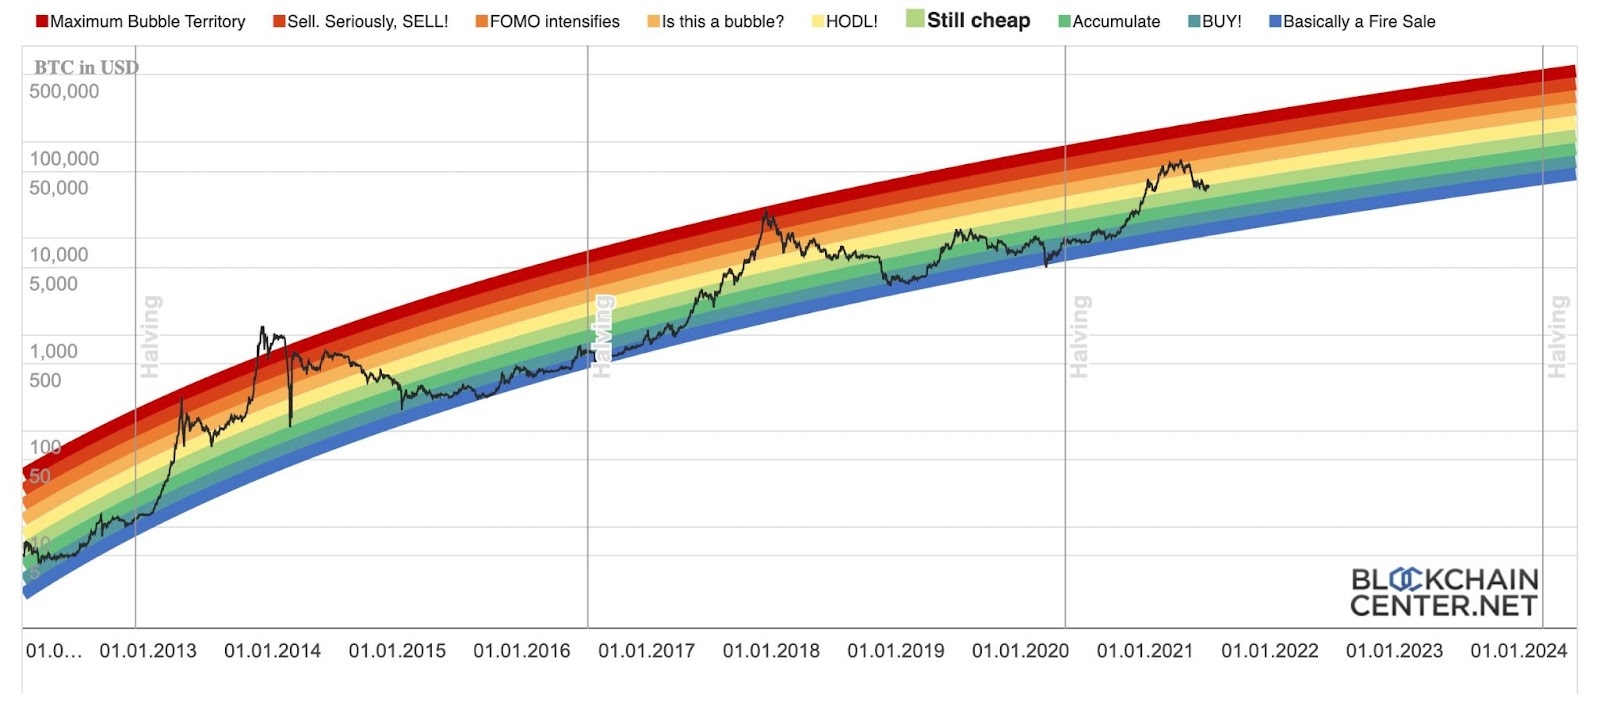 Bitcoin gains over time